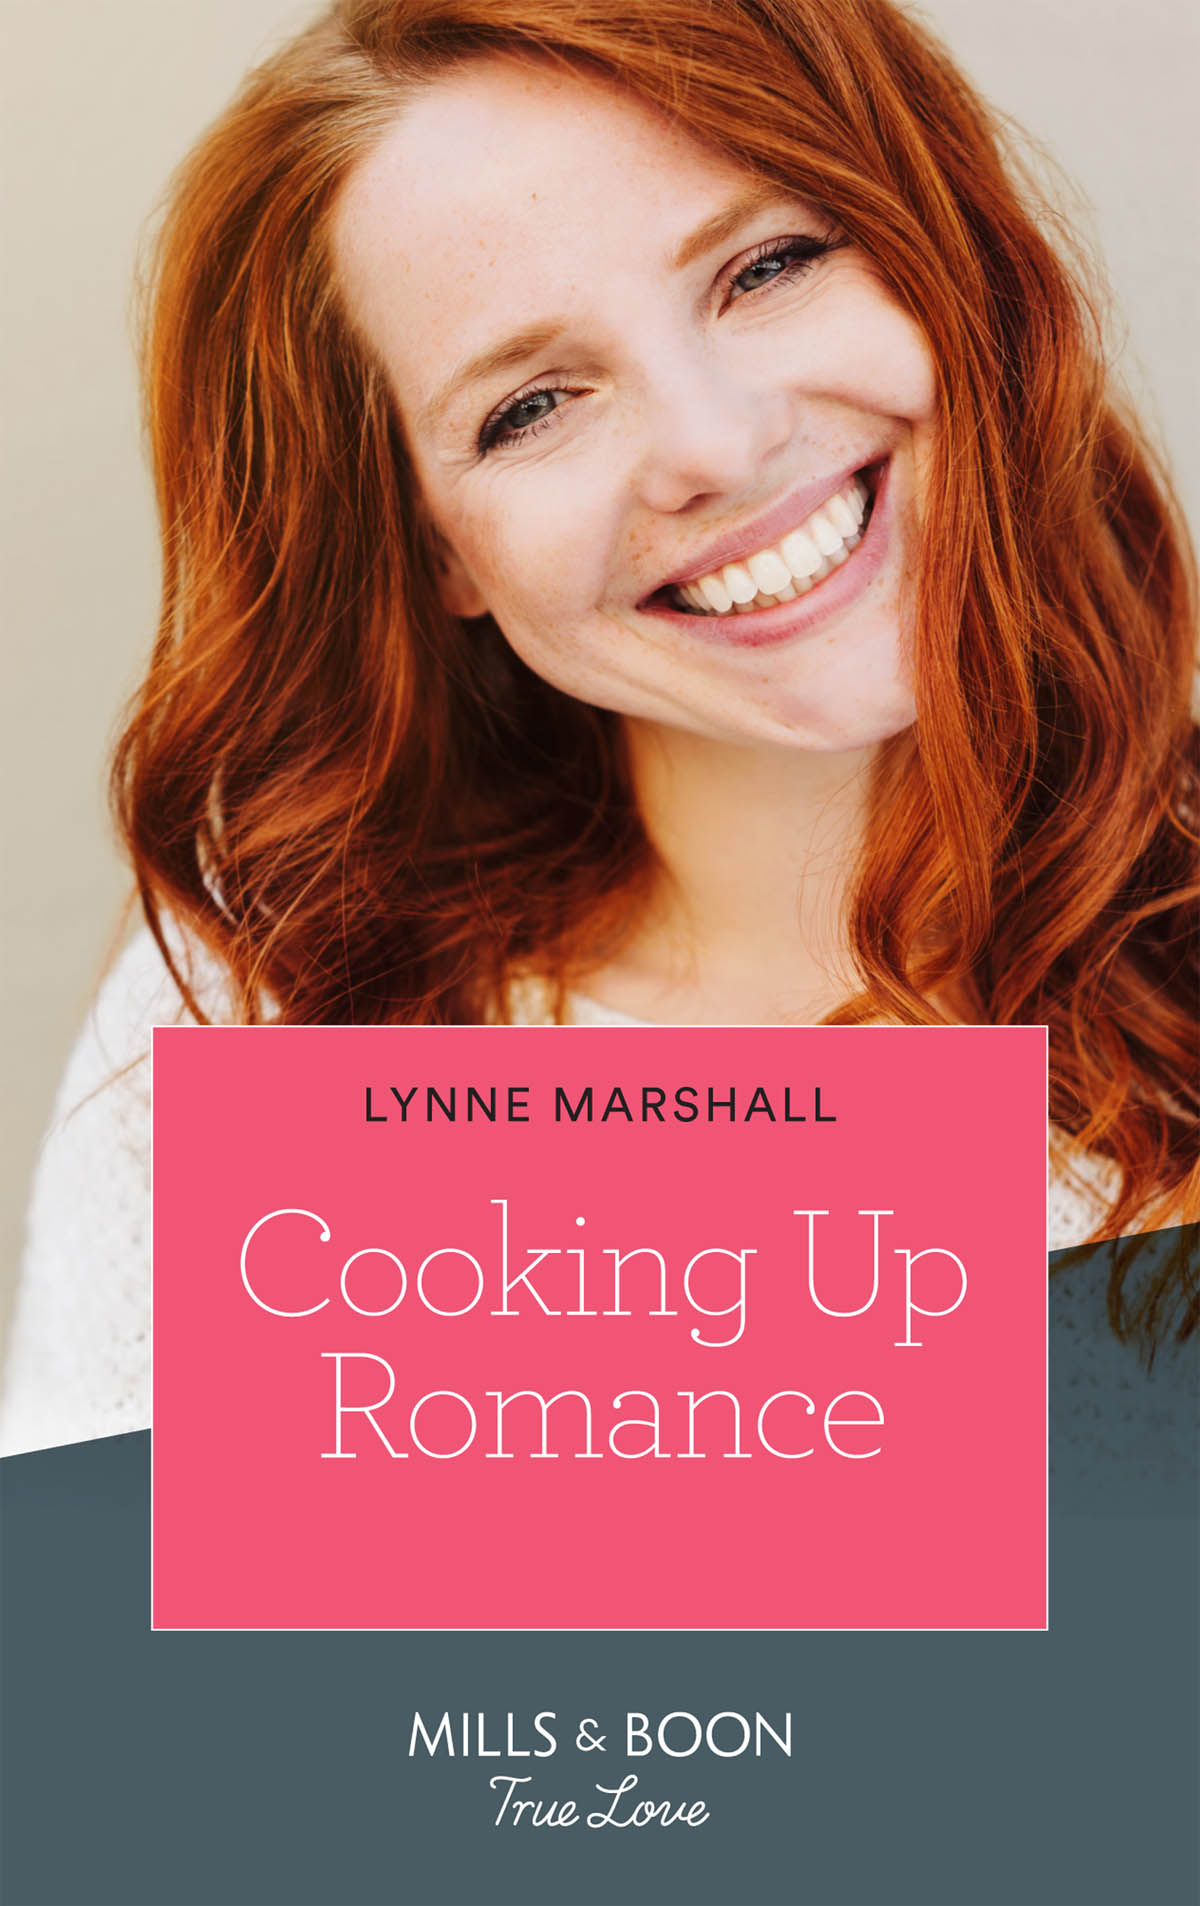 Lynne Marshall Cooking Up Romance irene brand second chance at love